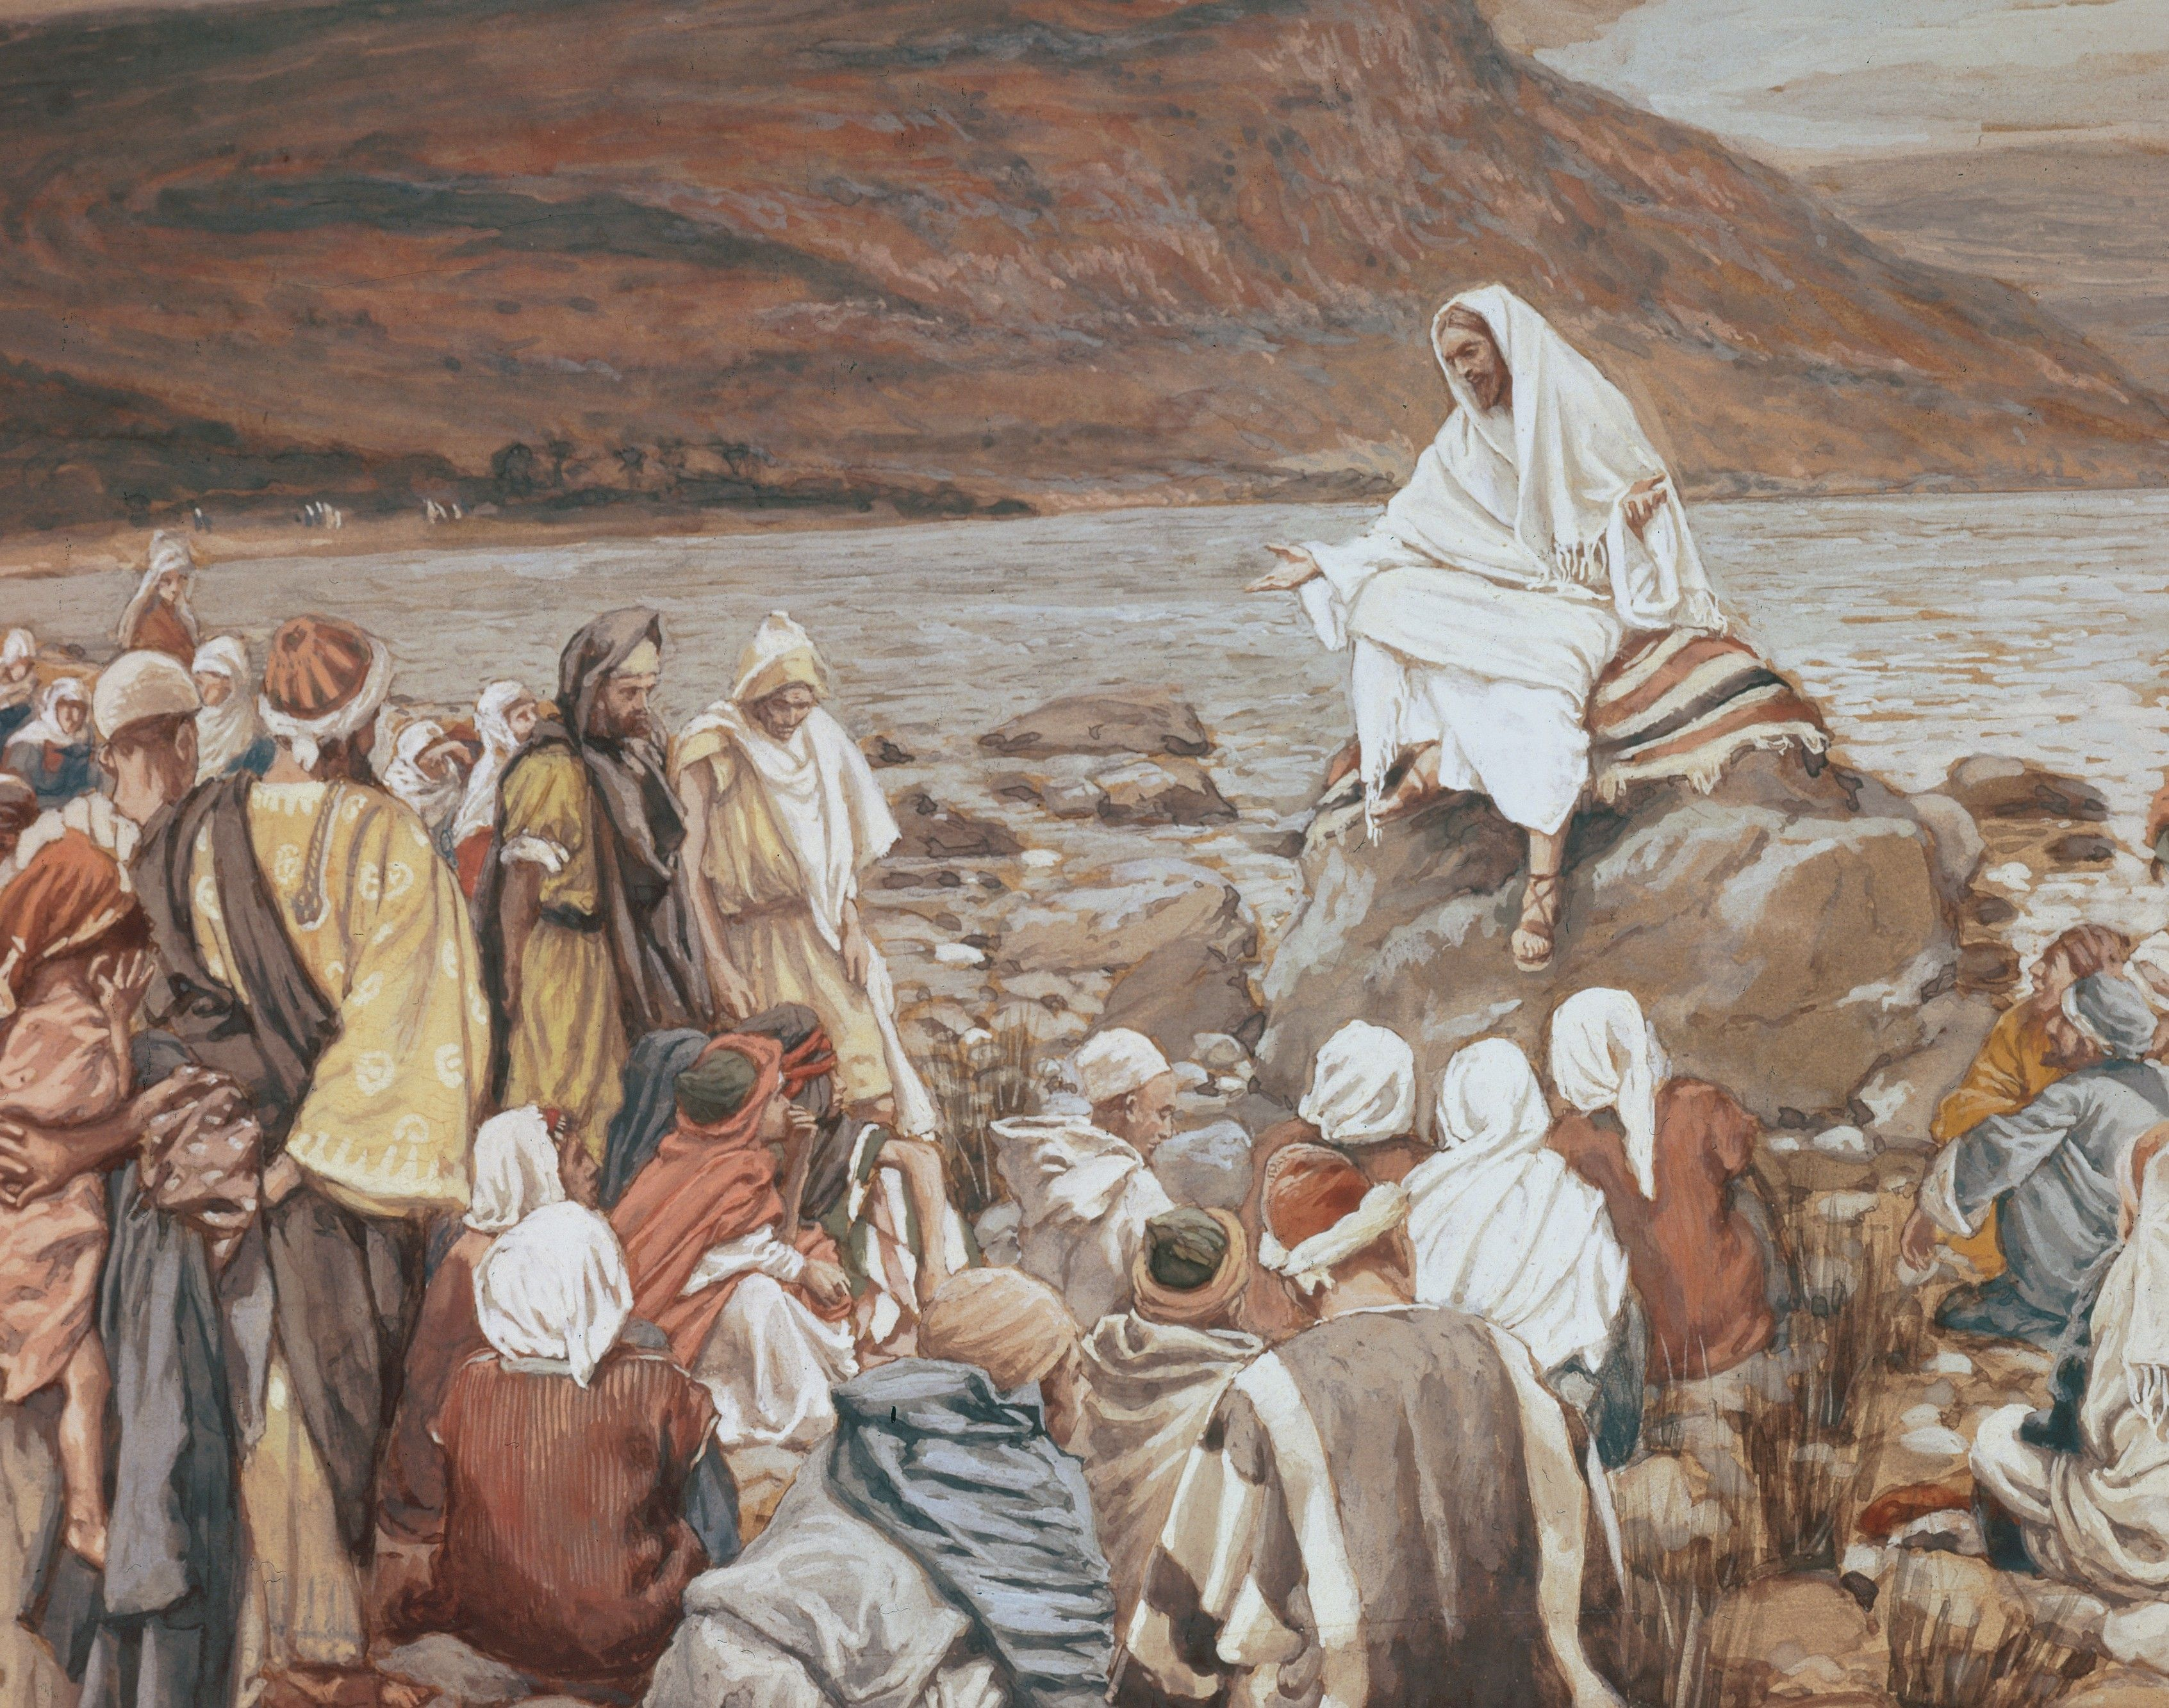 Jesus Teaching the People by the Seashore, by James Tissot